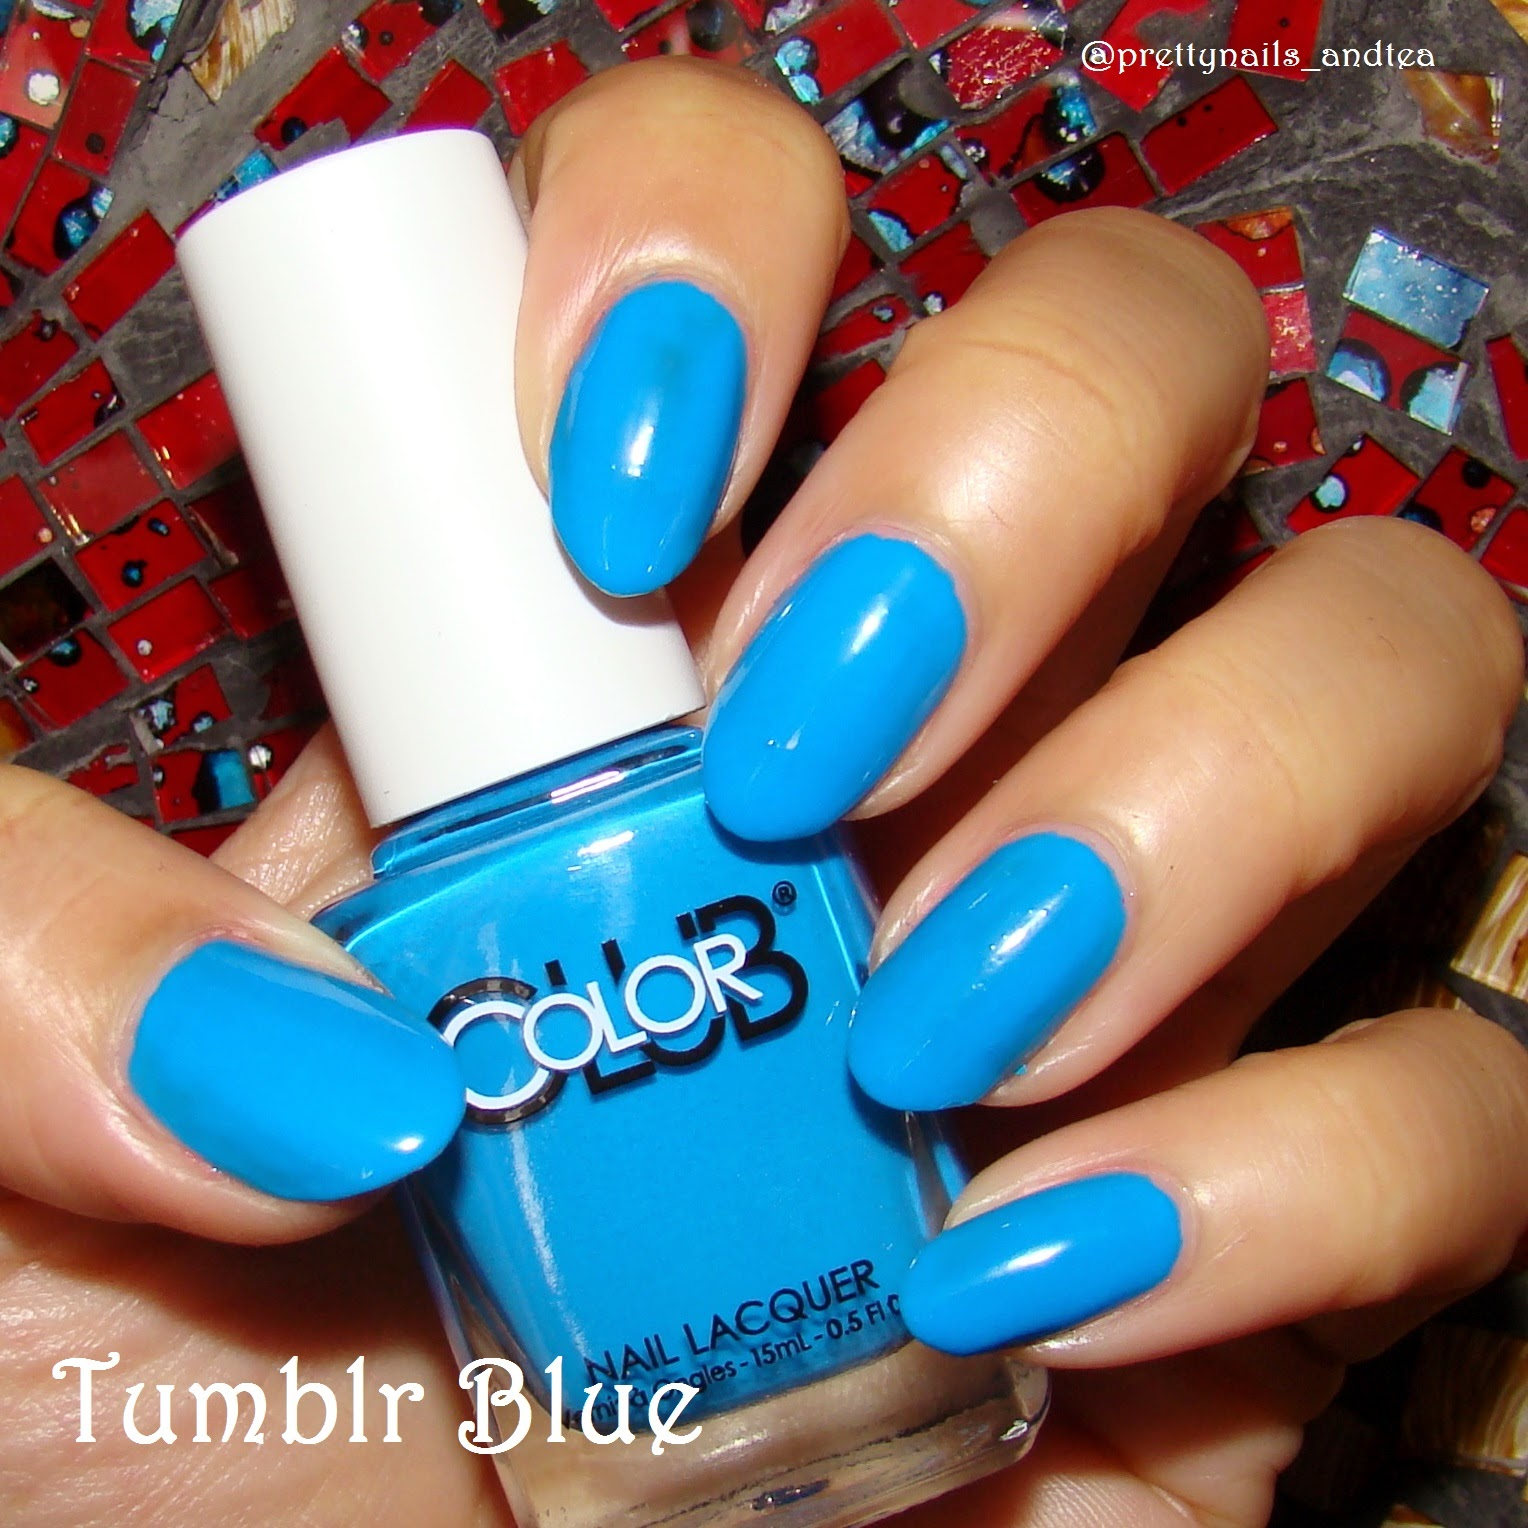 tmblr blue color club yahoo